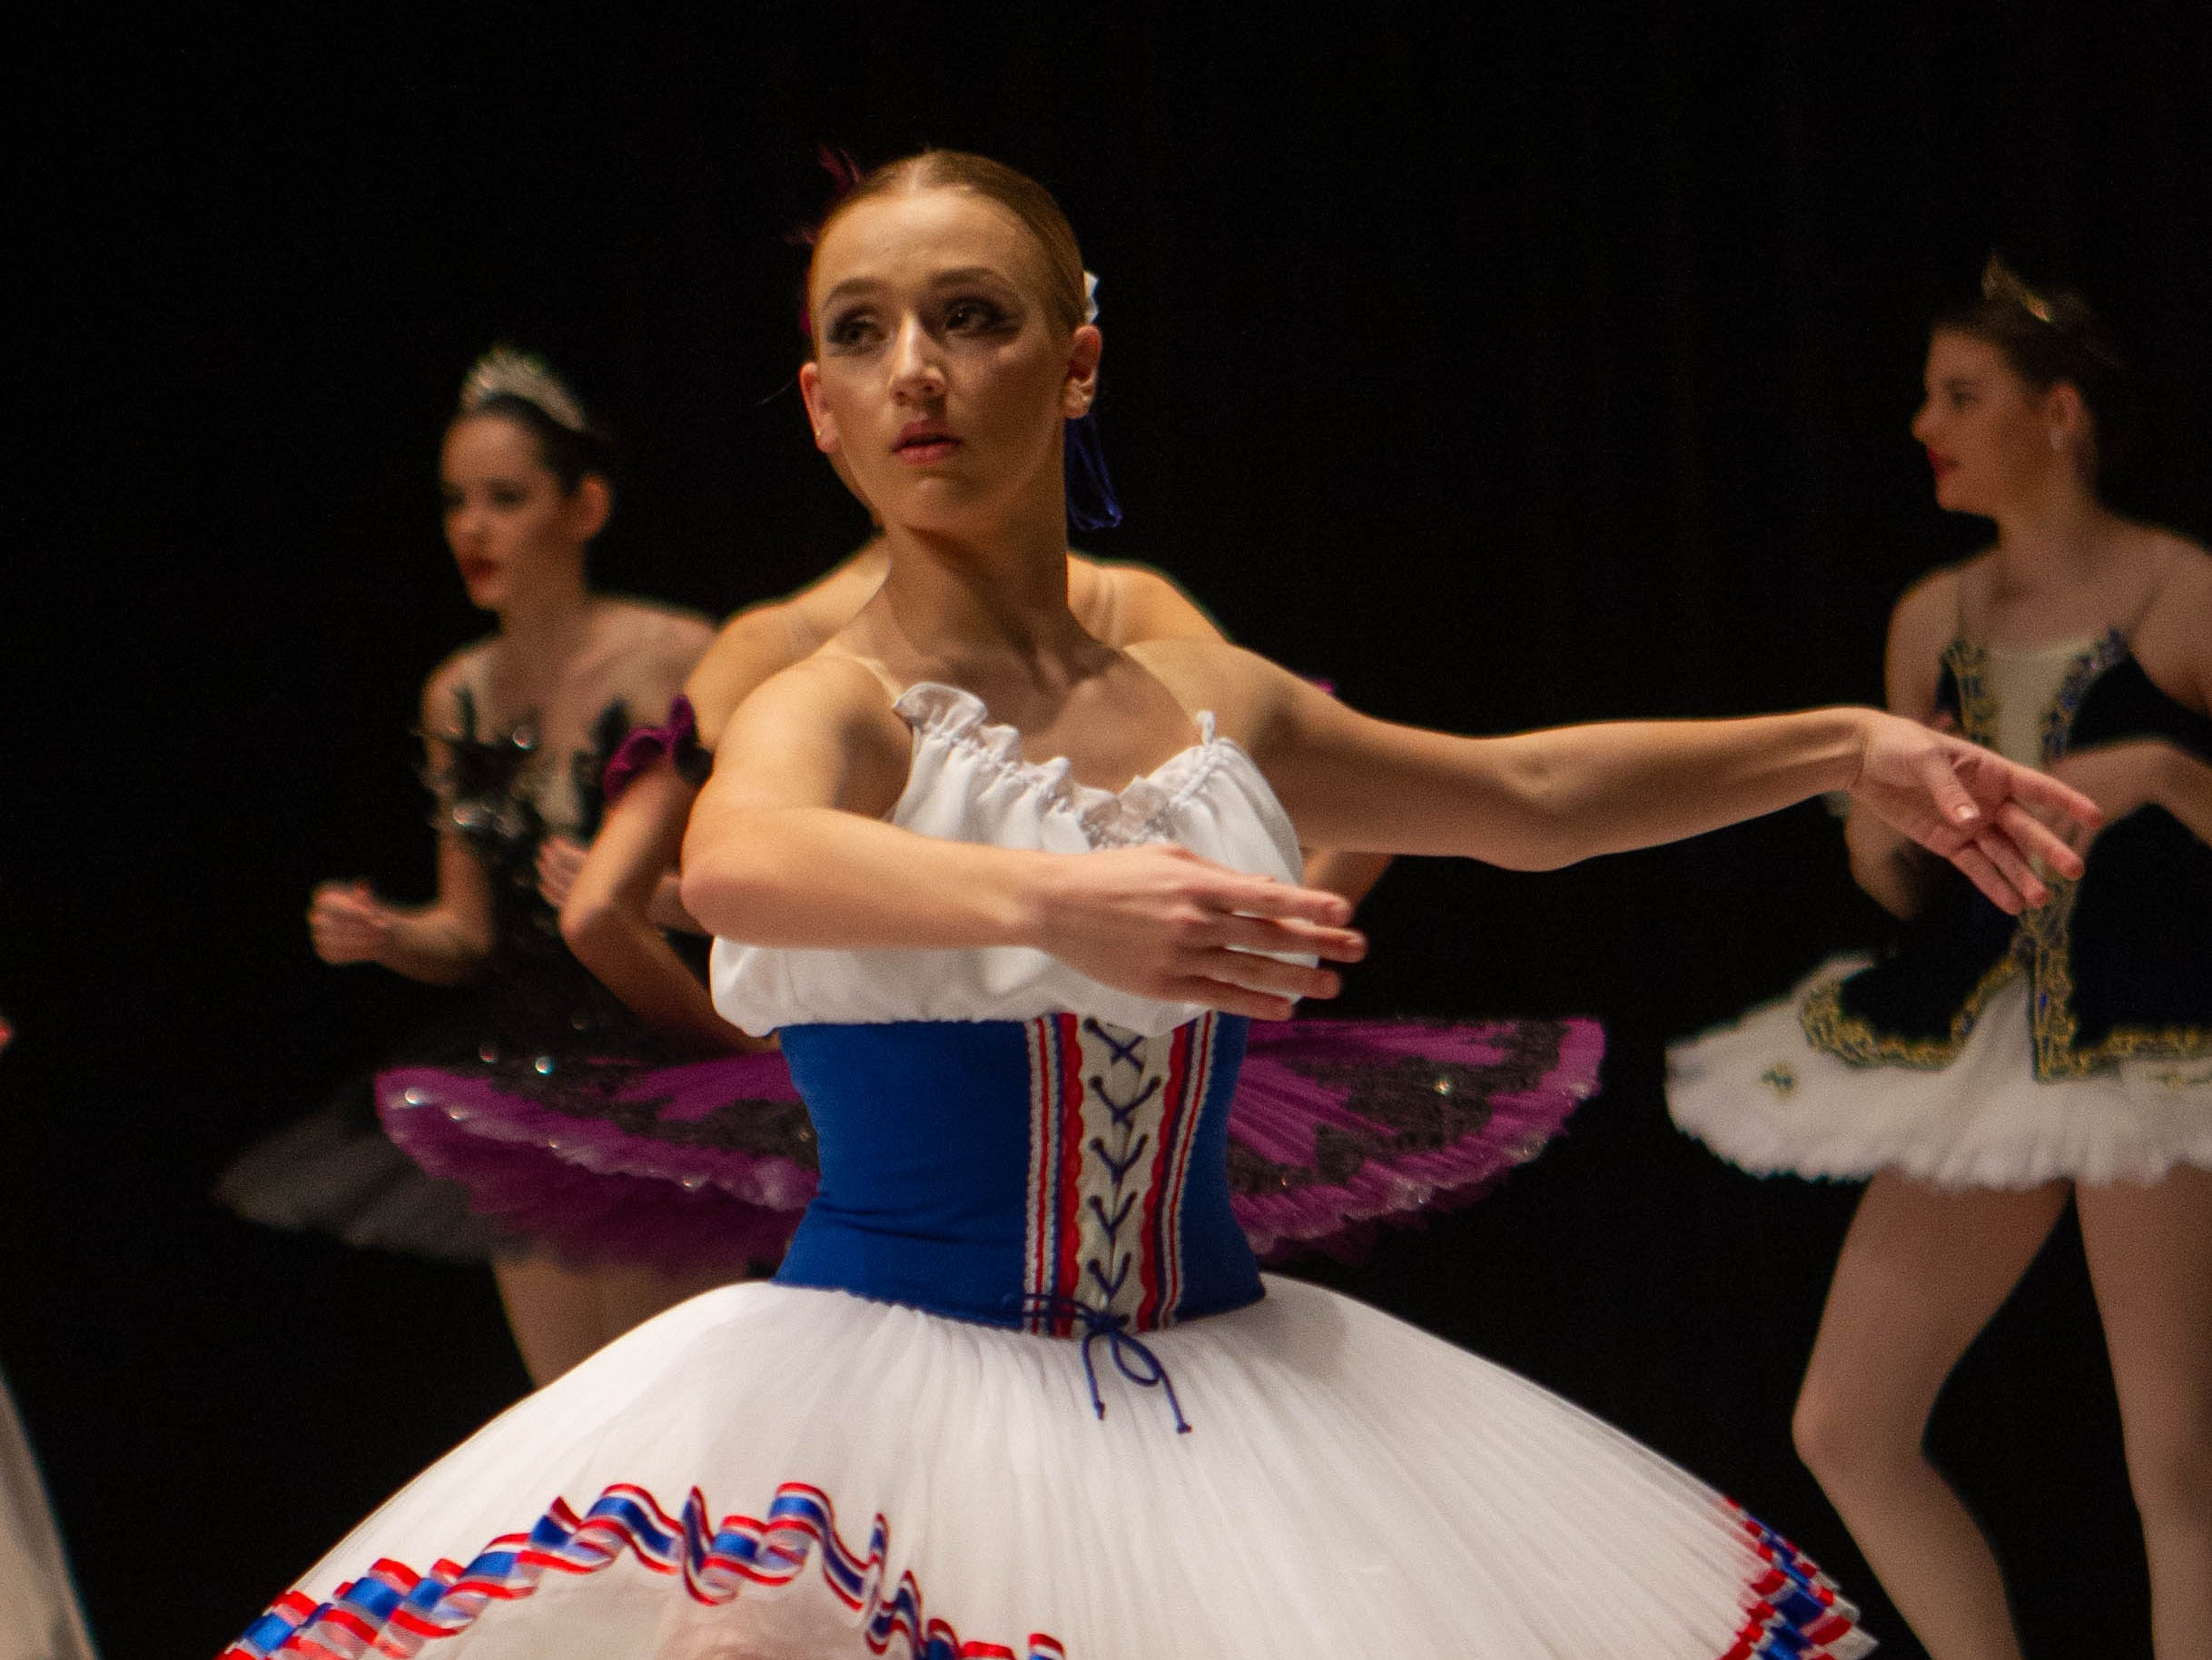 Isabelle Snelling warms up at the inaugural year of Grand Jeté dance competition in the Senior Ballet division, at the South Carolina Governor's School for the Arts and Humanities, on Saturday, March 2, 2019.